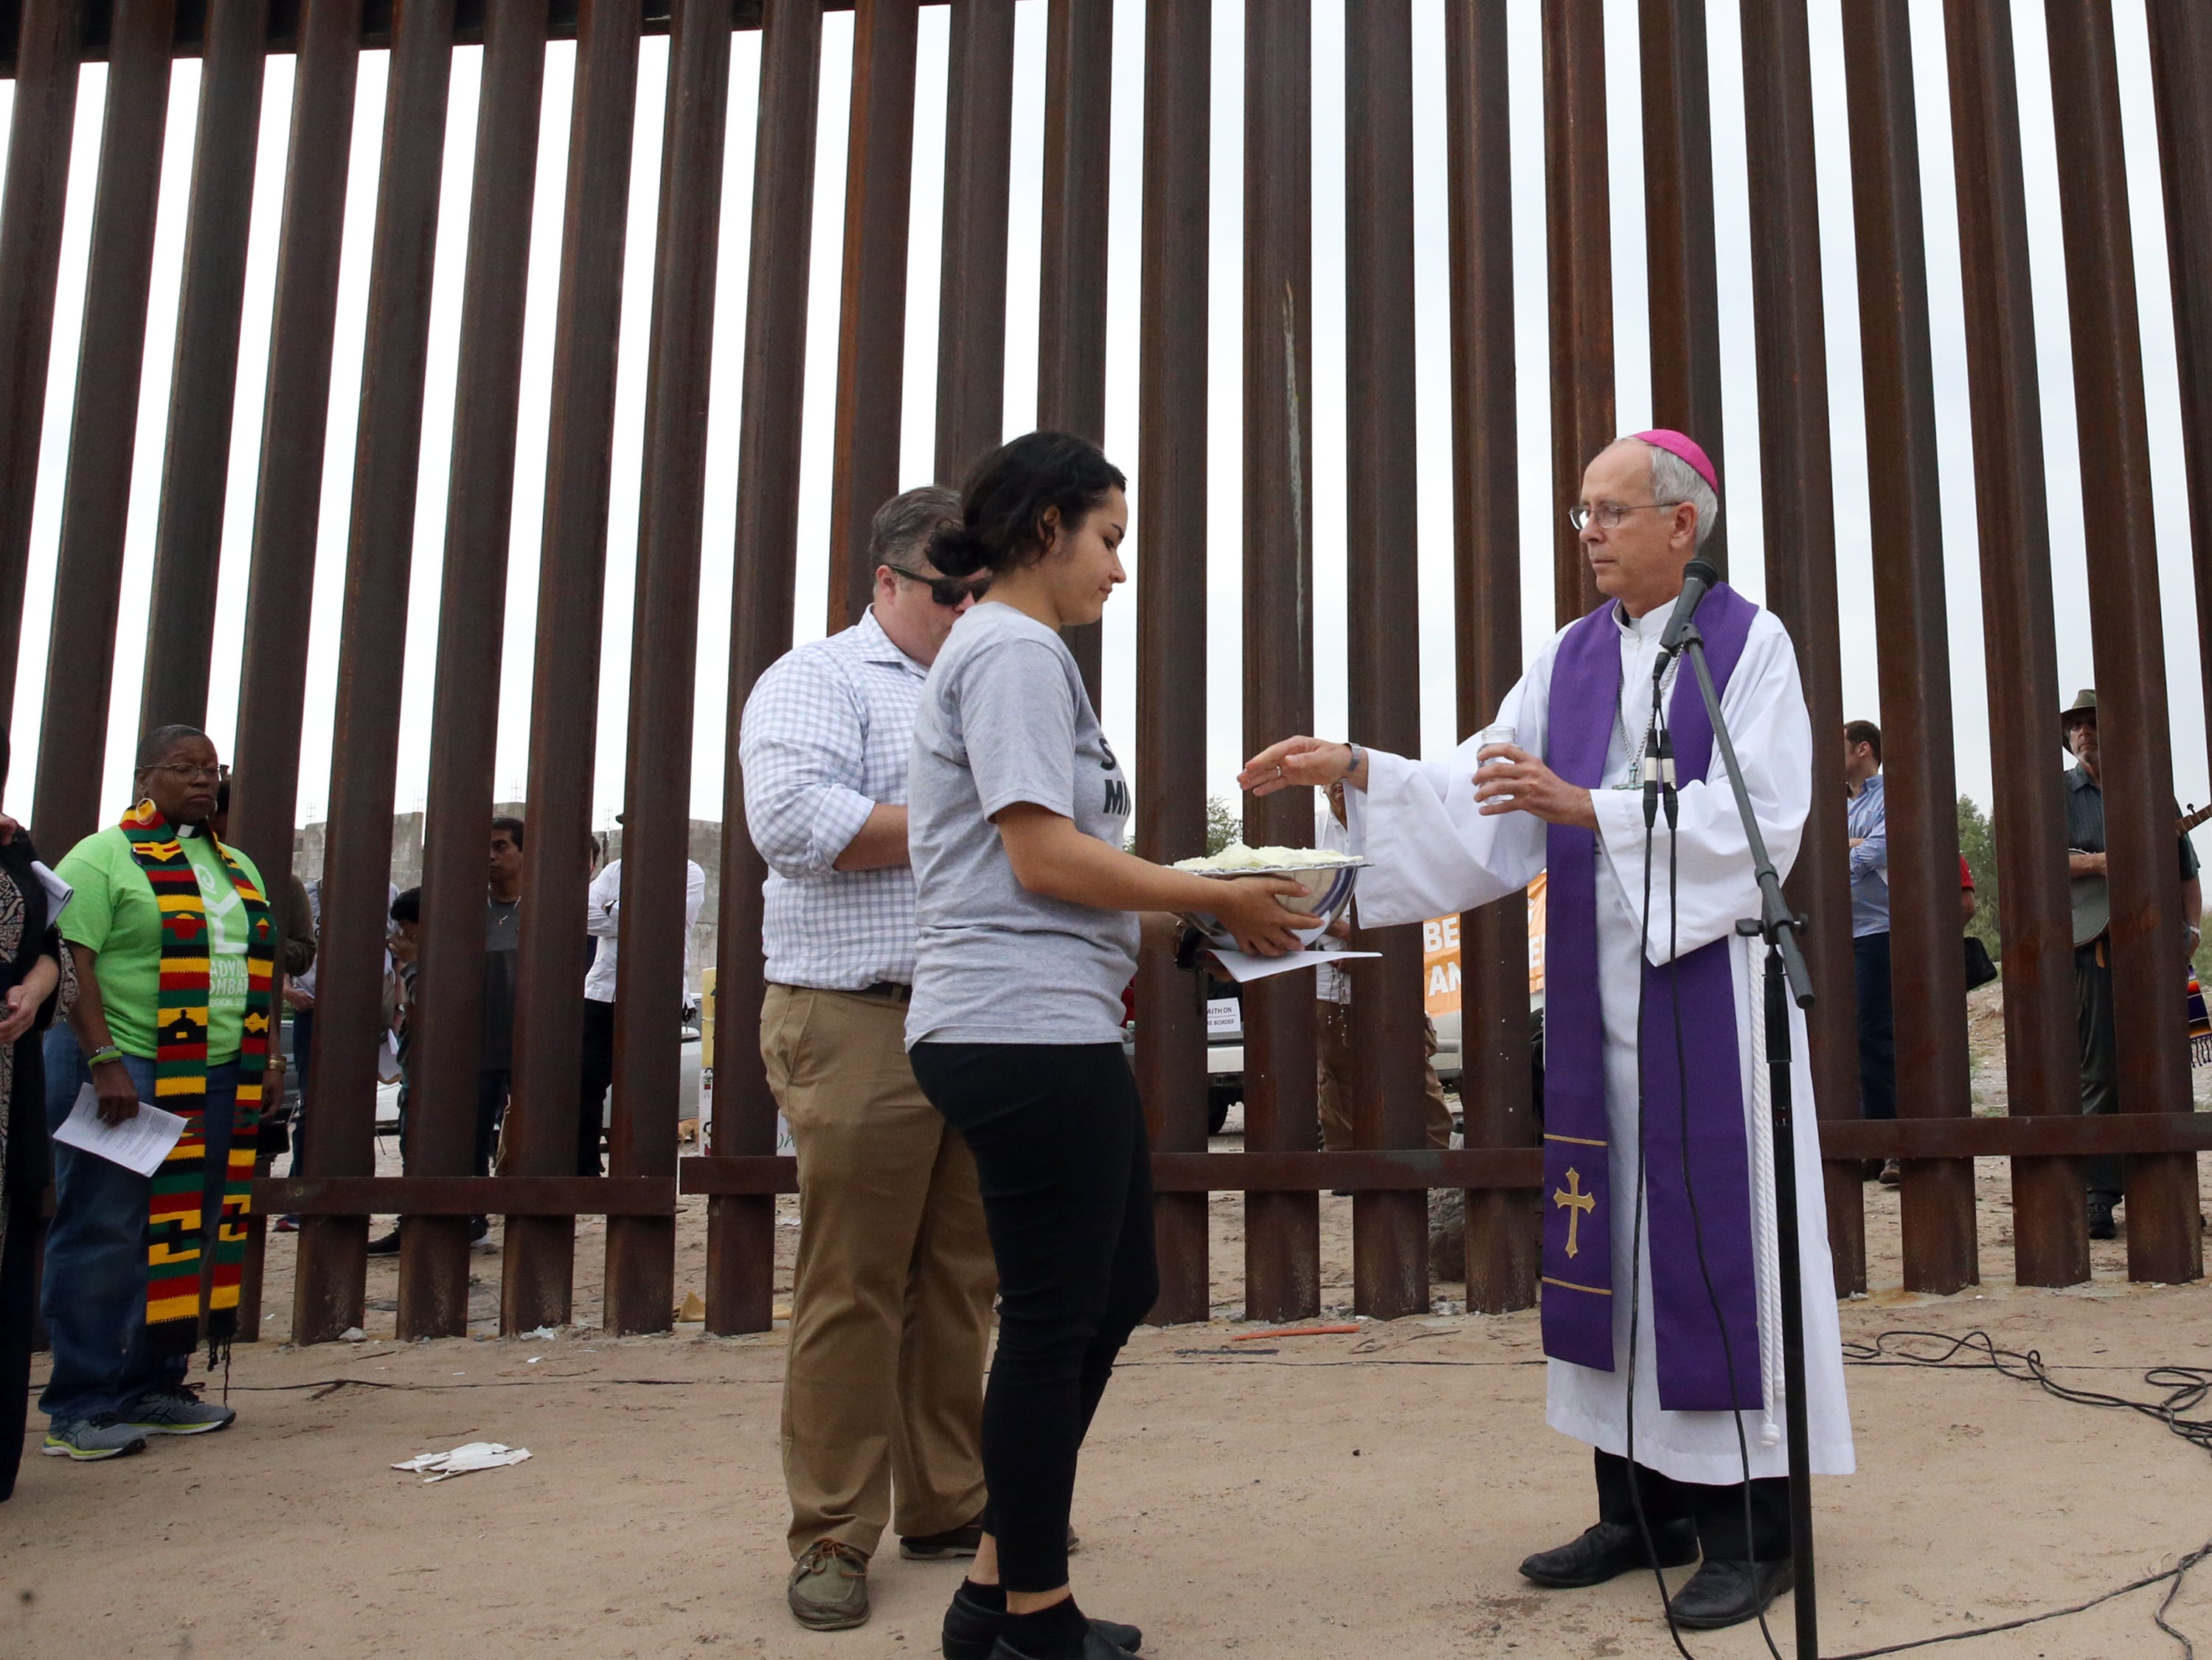 El Paso Catholic Bishop Mark Seitz blesses flower petals at the border fence in Sunland Park, N.M. Friday.